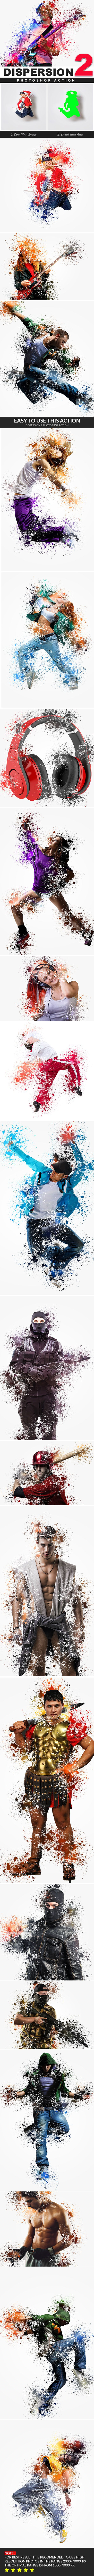 Dispersion #Photoshop #Action - Photo Effects Actions